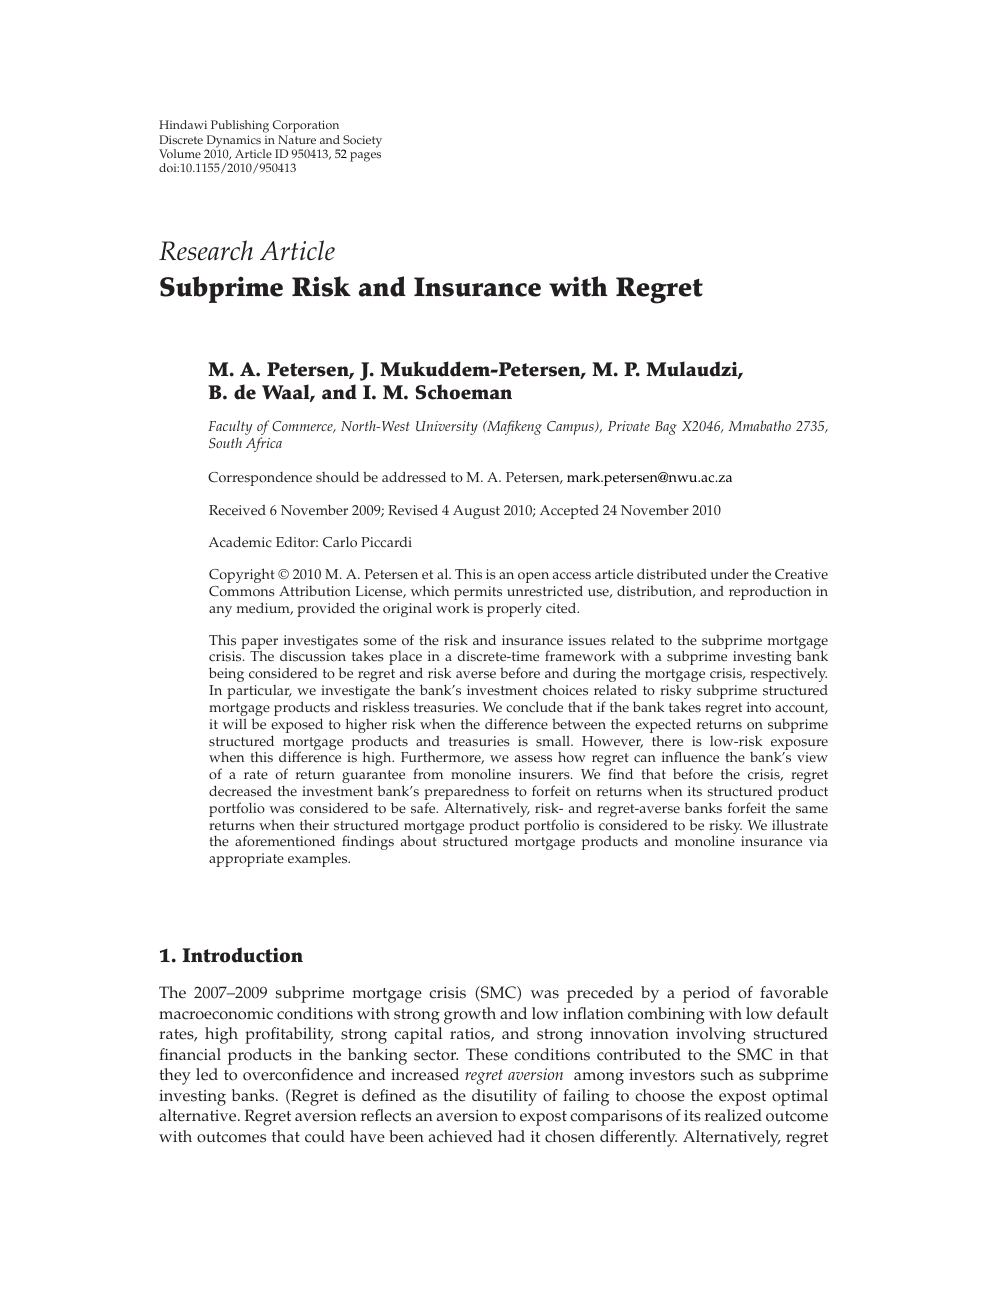 Subprime Risk and Insurance with Regret – topic of research